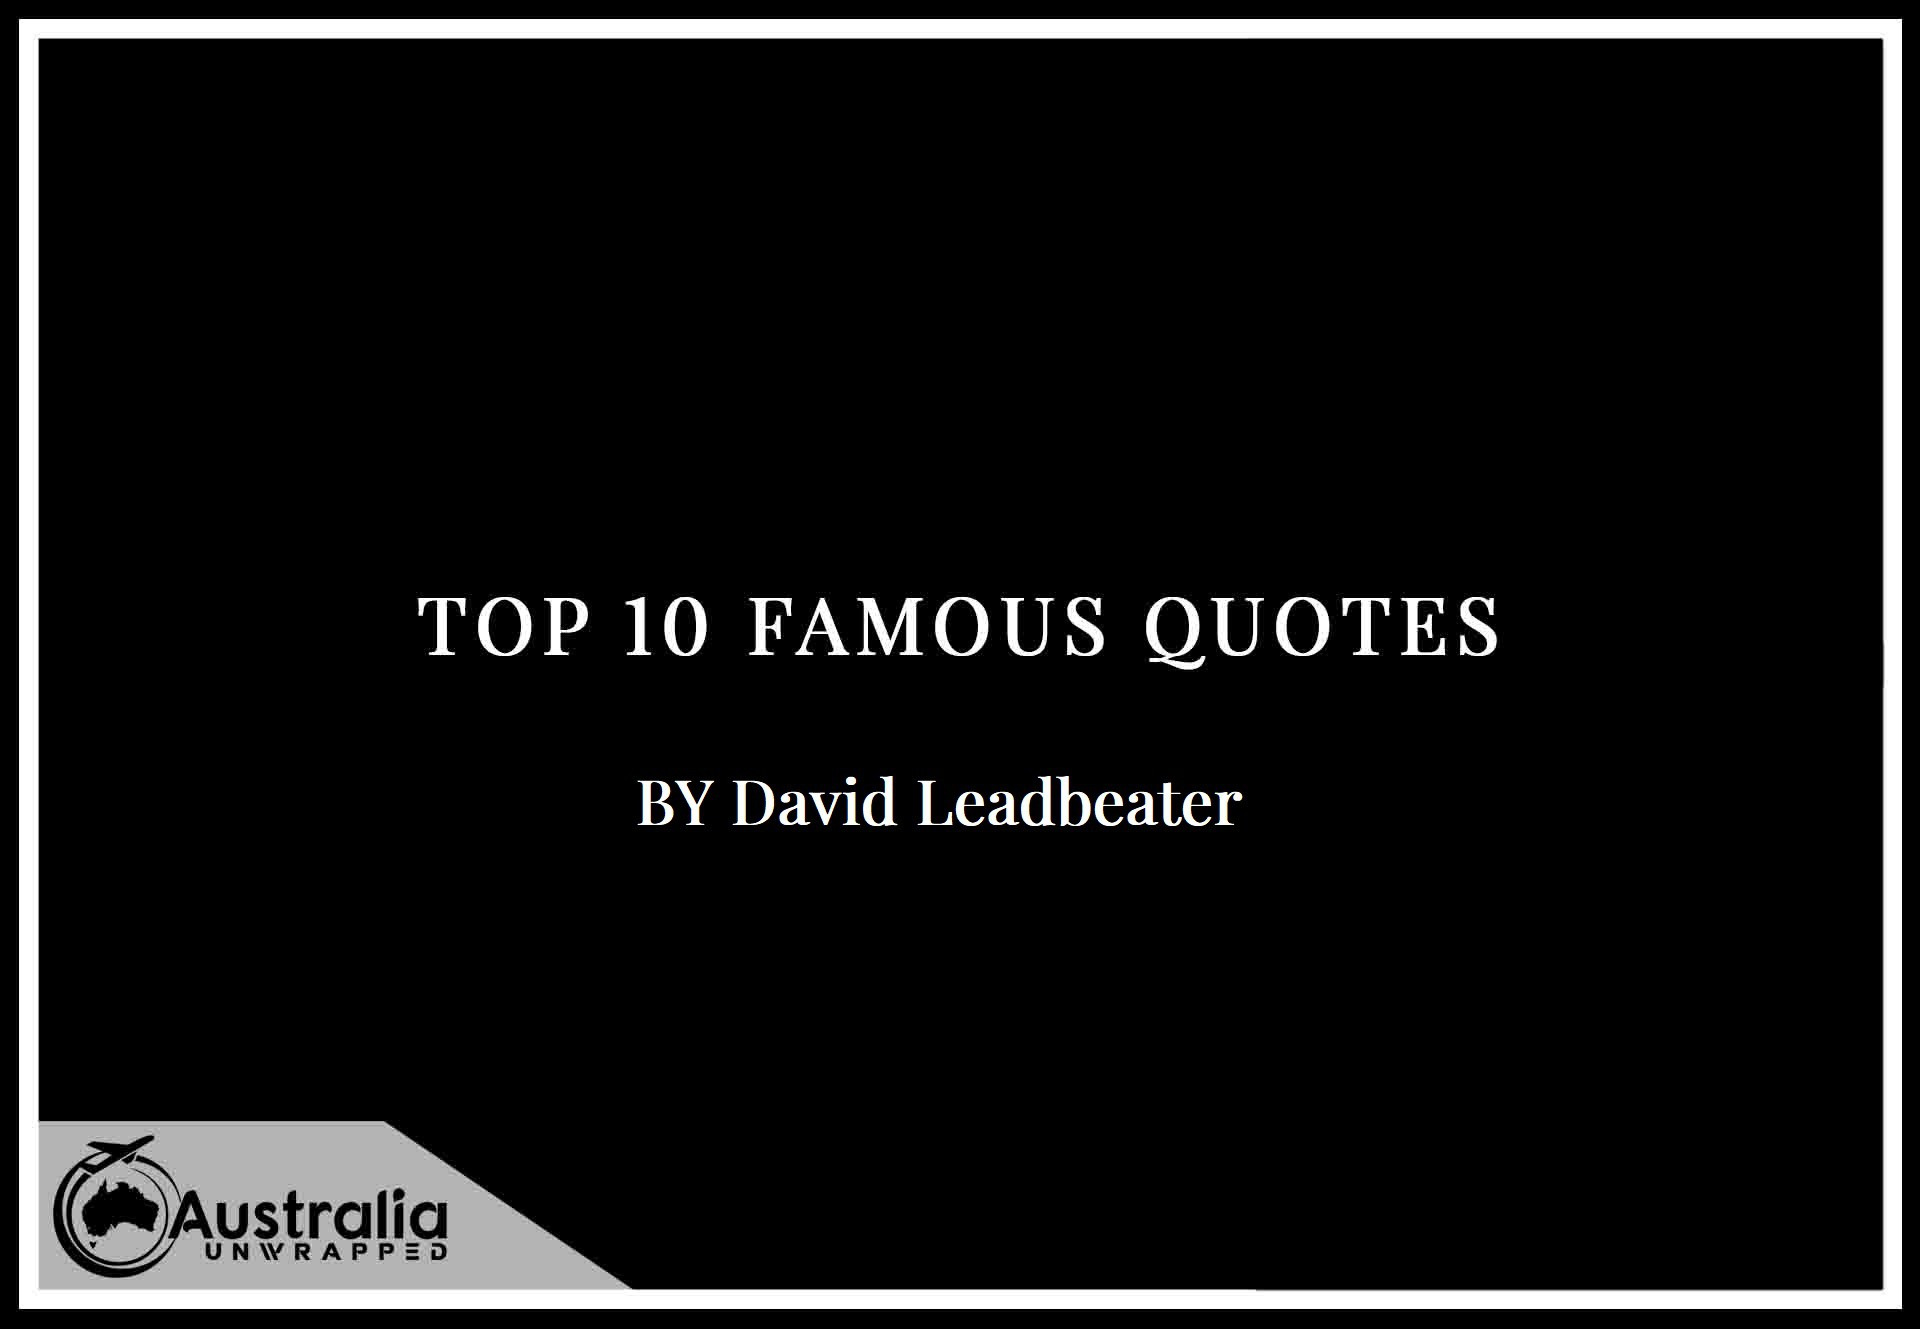 Top 10 Famous Quotes by Author David Leadbeater